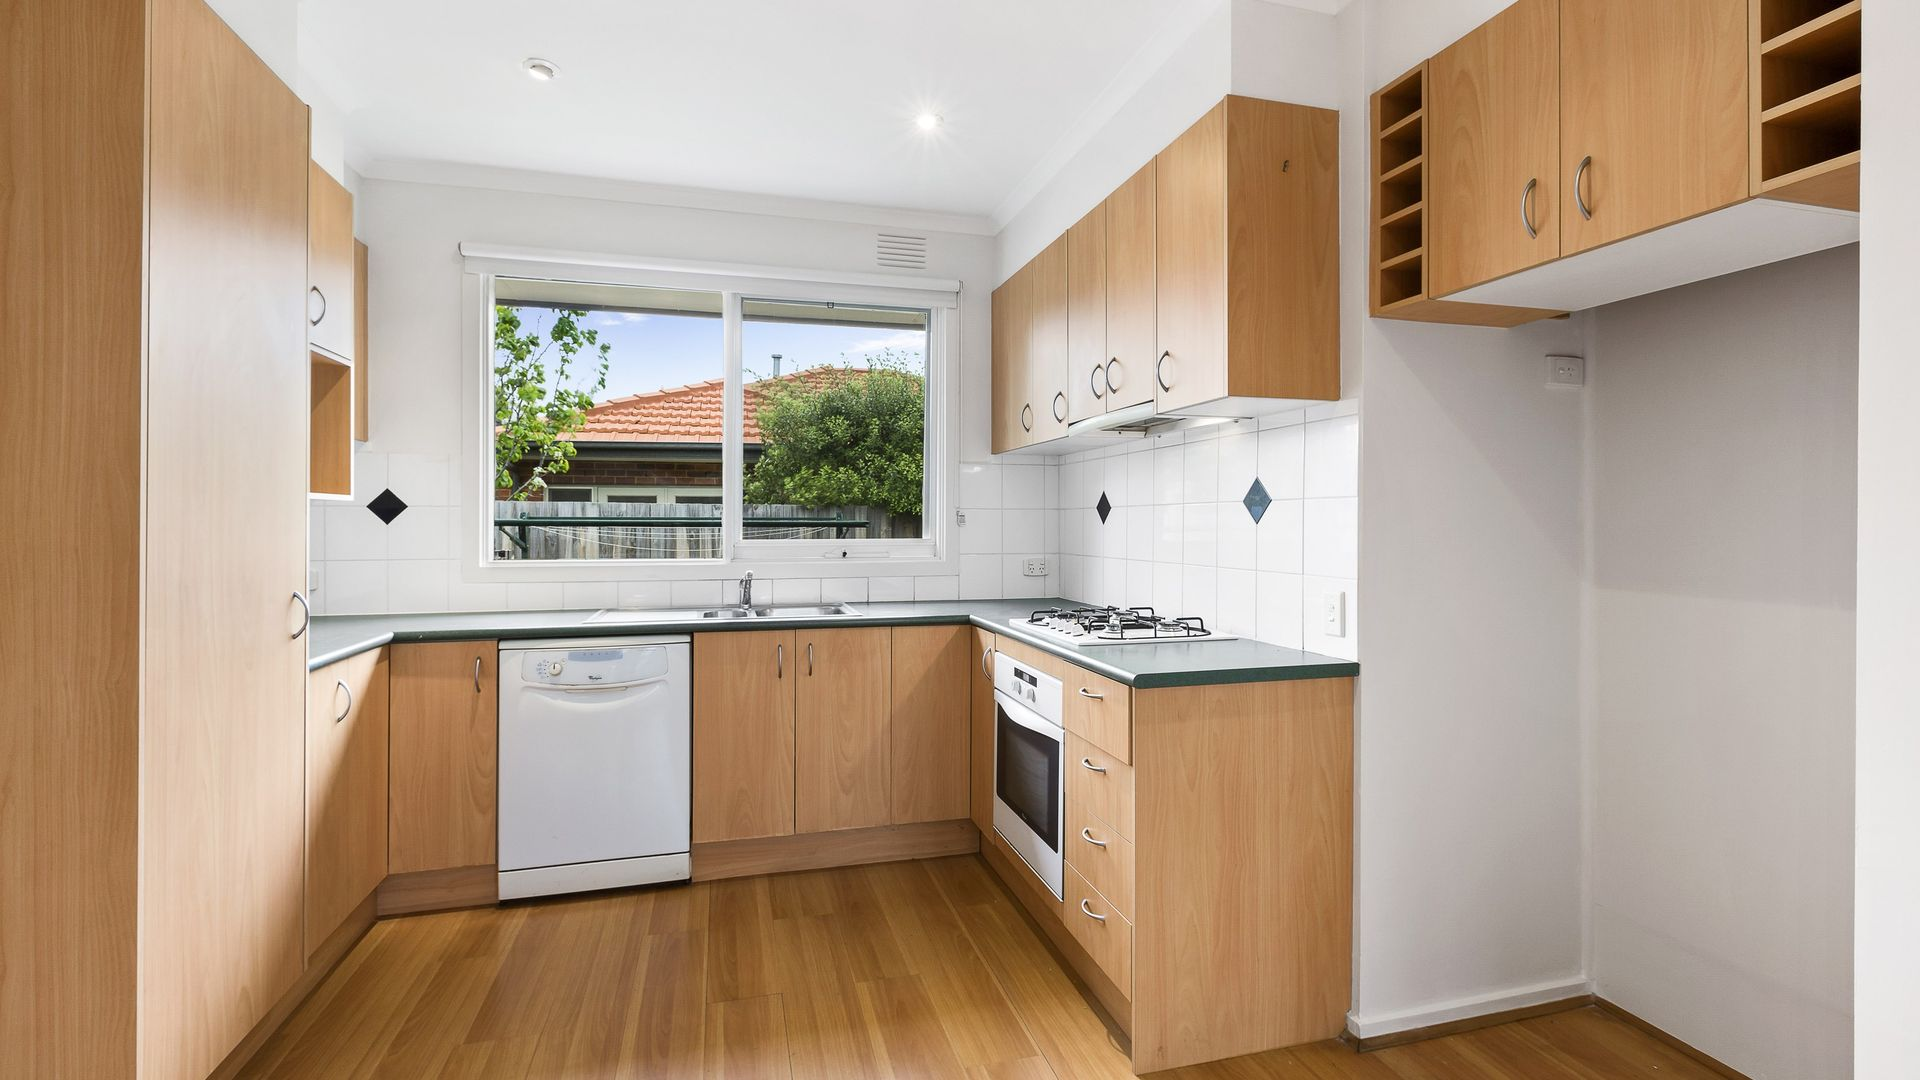 2/12 Clapham Road, Hughesdale VIC 3166, Image 2